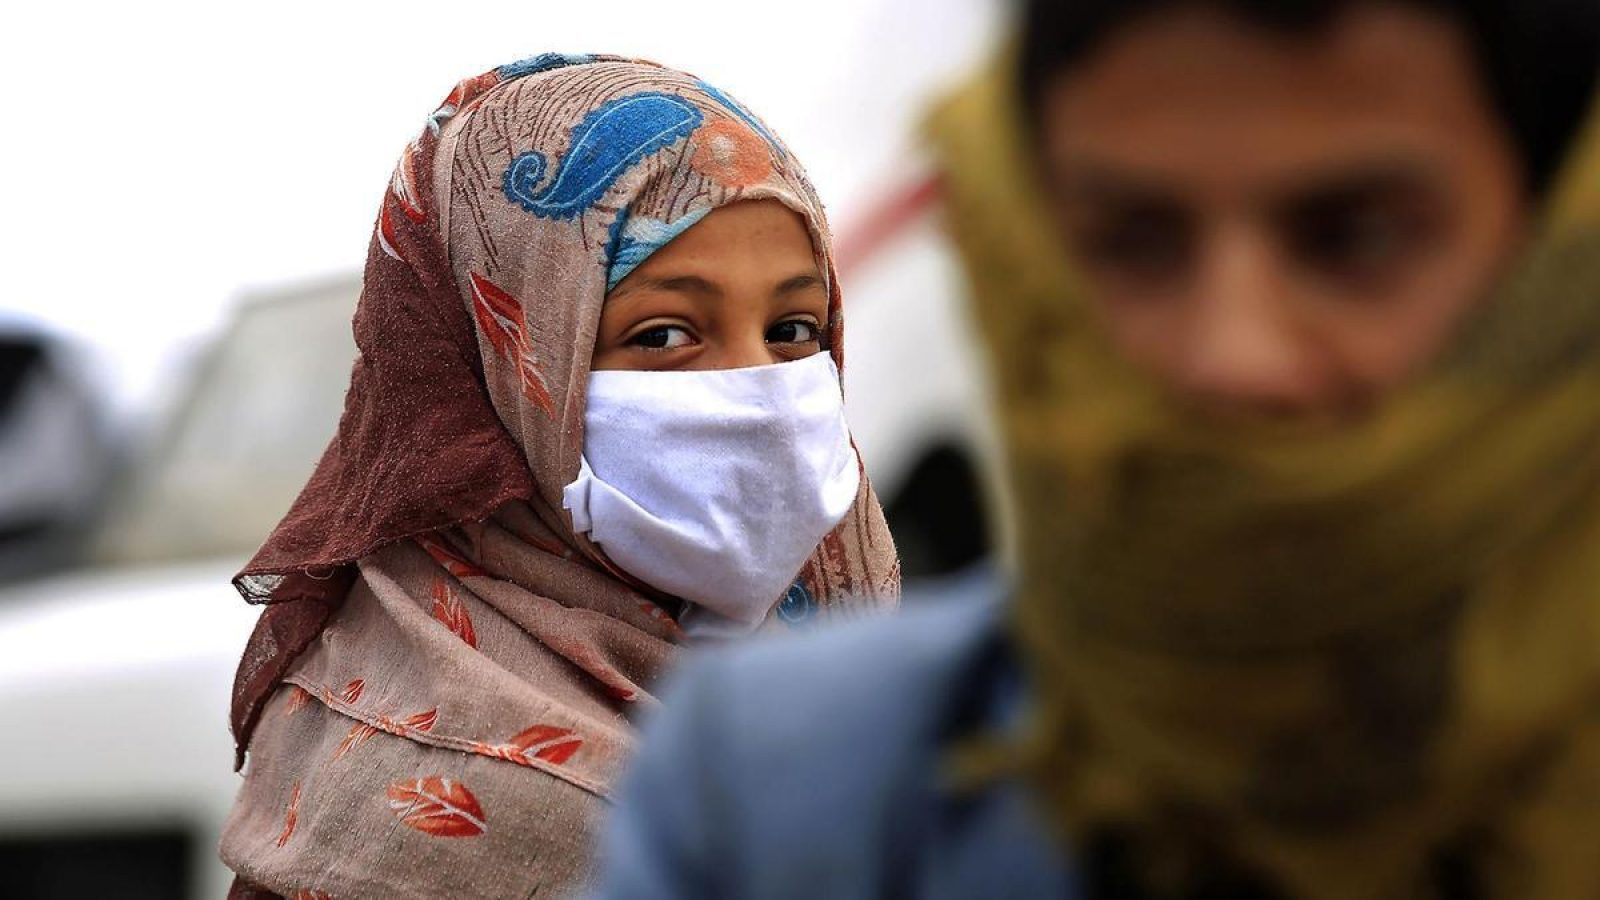 A Yemeni refugee wearing a mask